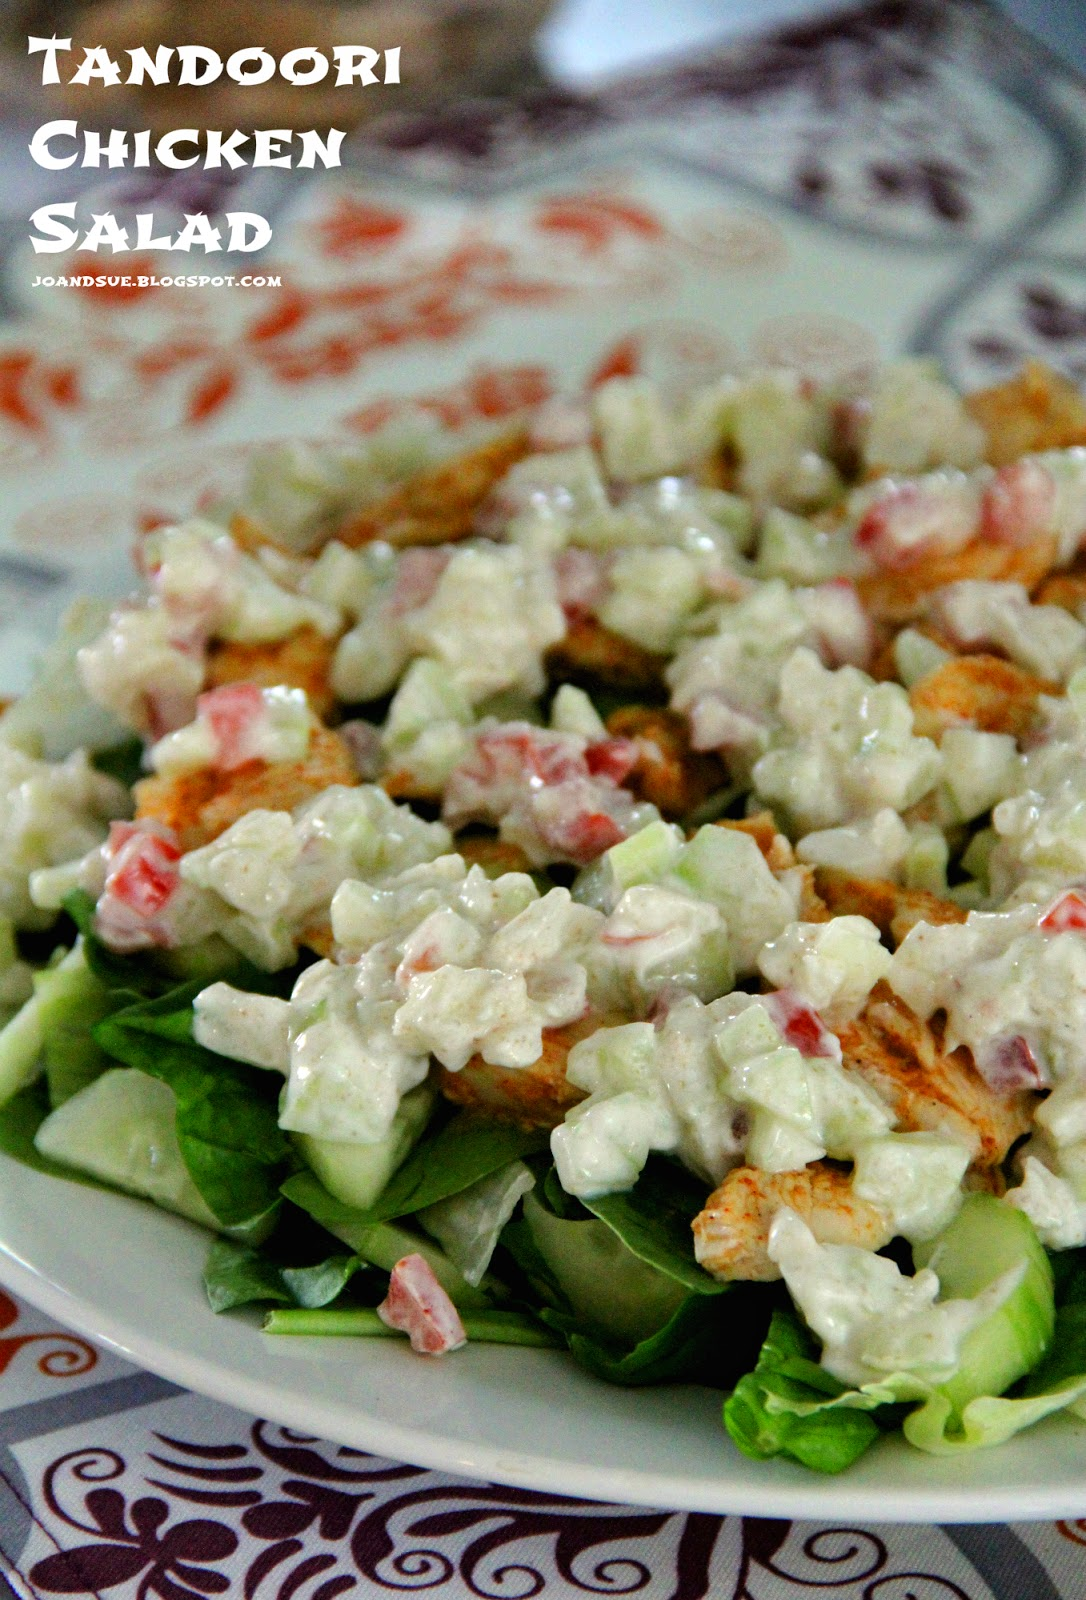 Jo and Sue: Tandoori Chicken Salad With Tomato and Cucumber Raita